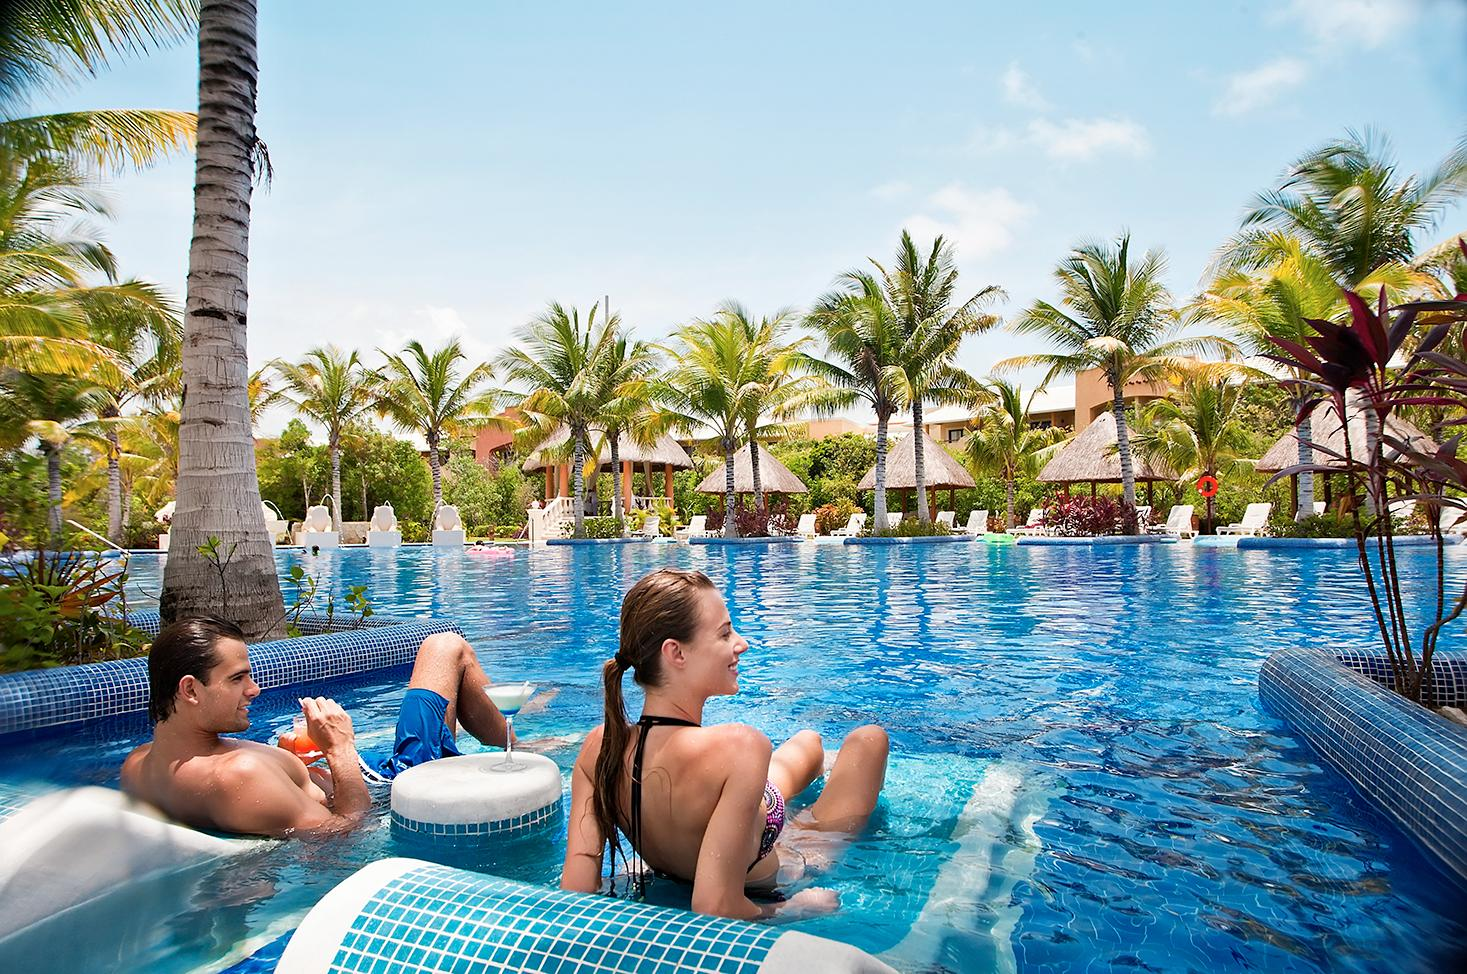 Couple relaxing in the pool at Barcelo Hotels & Resorts